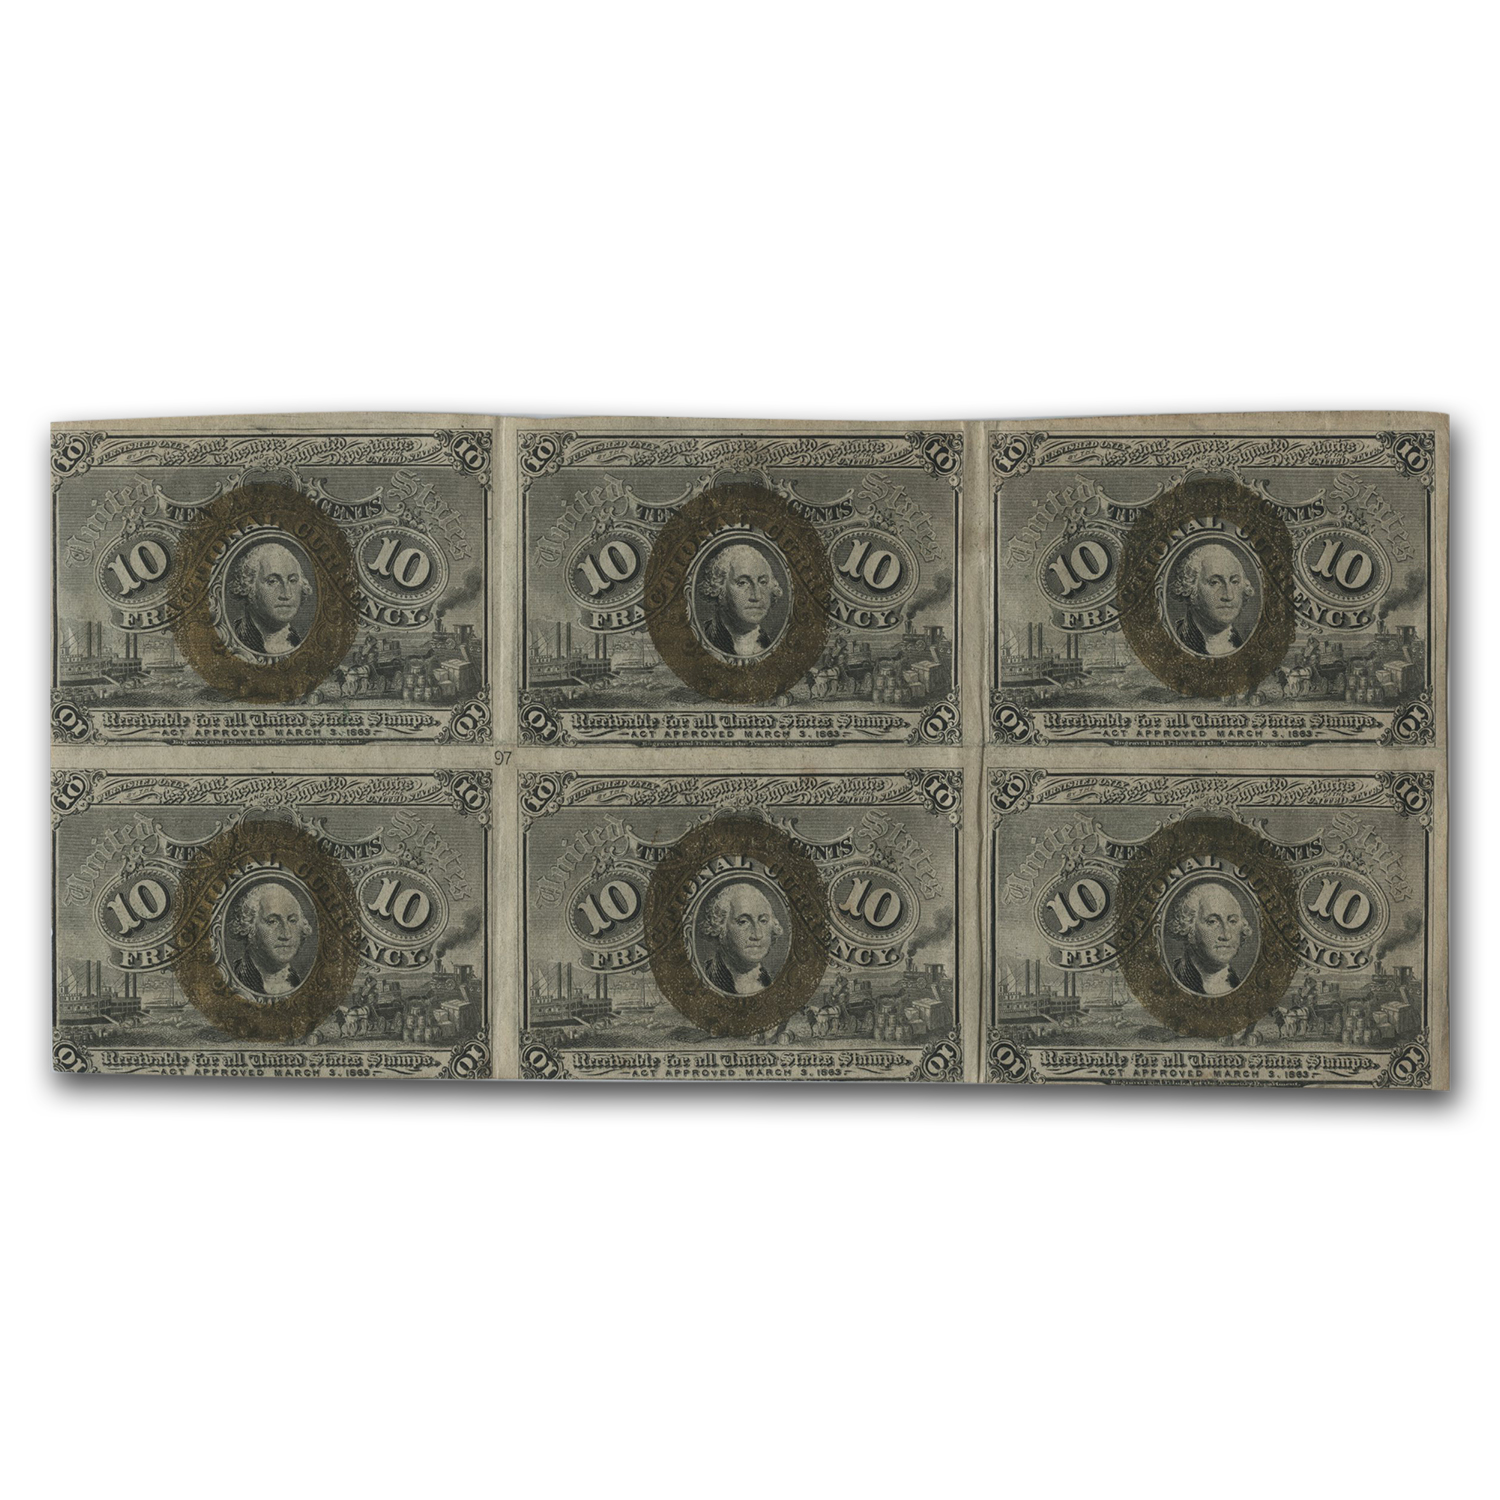 2nd Issue Fractional Currency 10 Cents XF (Uncut Sheet of 6)